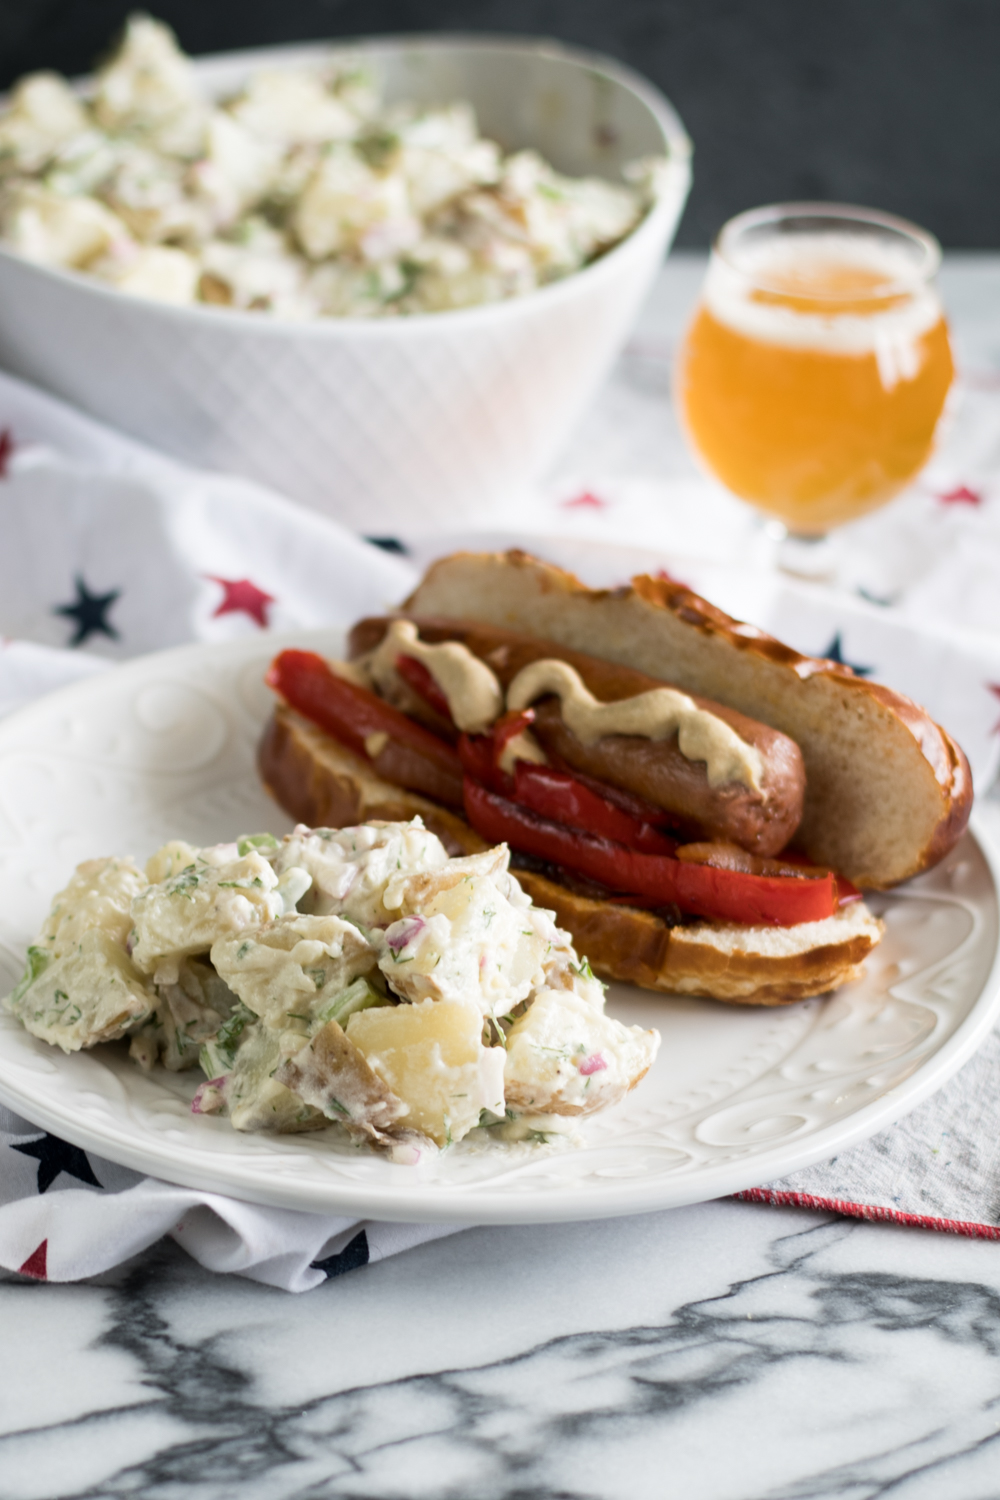 Vegan Dill Potato Salad is perfect for Summer BBQs and picnics! It makes the best side dish!! #vegan #potato #salad #recipe #summer #BBQ